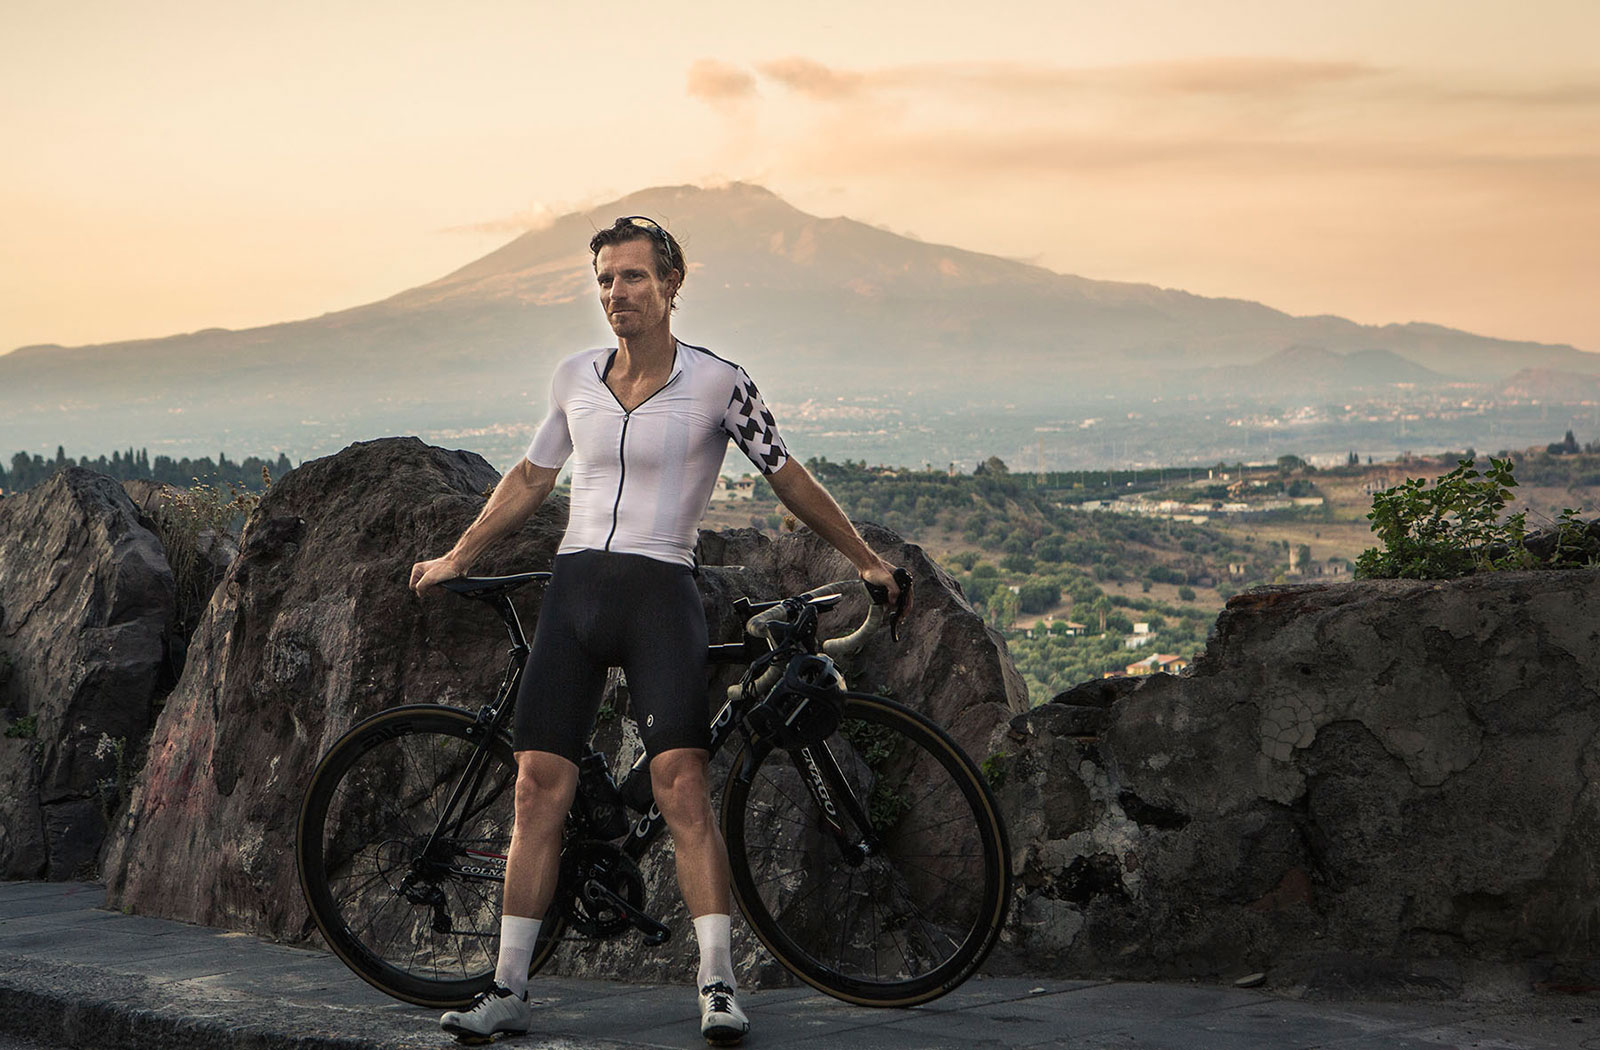 Black Road Cycling and Assos model Thomas Opstrup in front of Etna in the golden hour